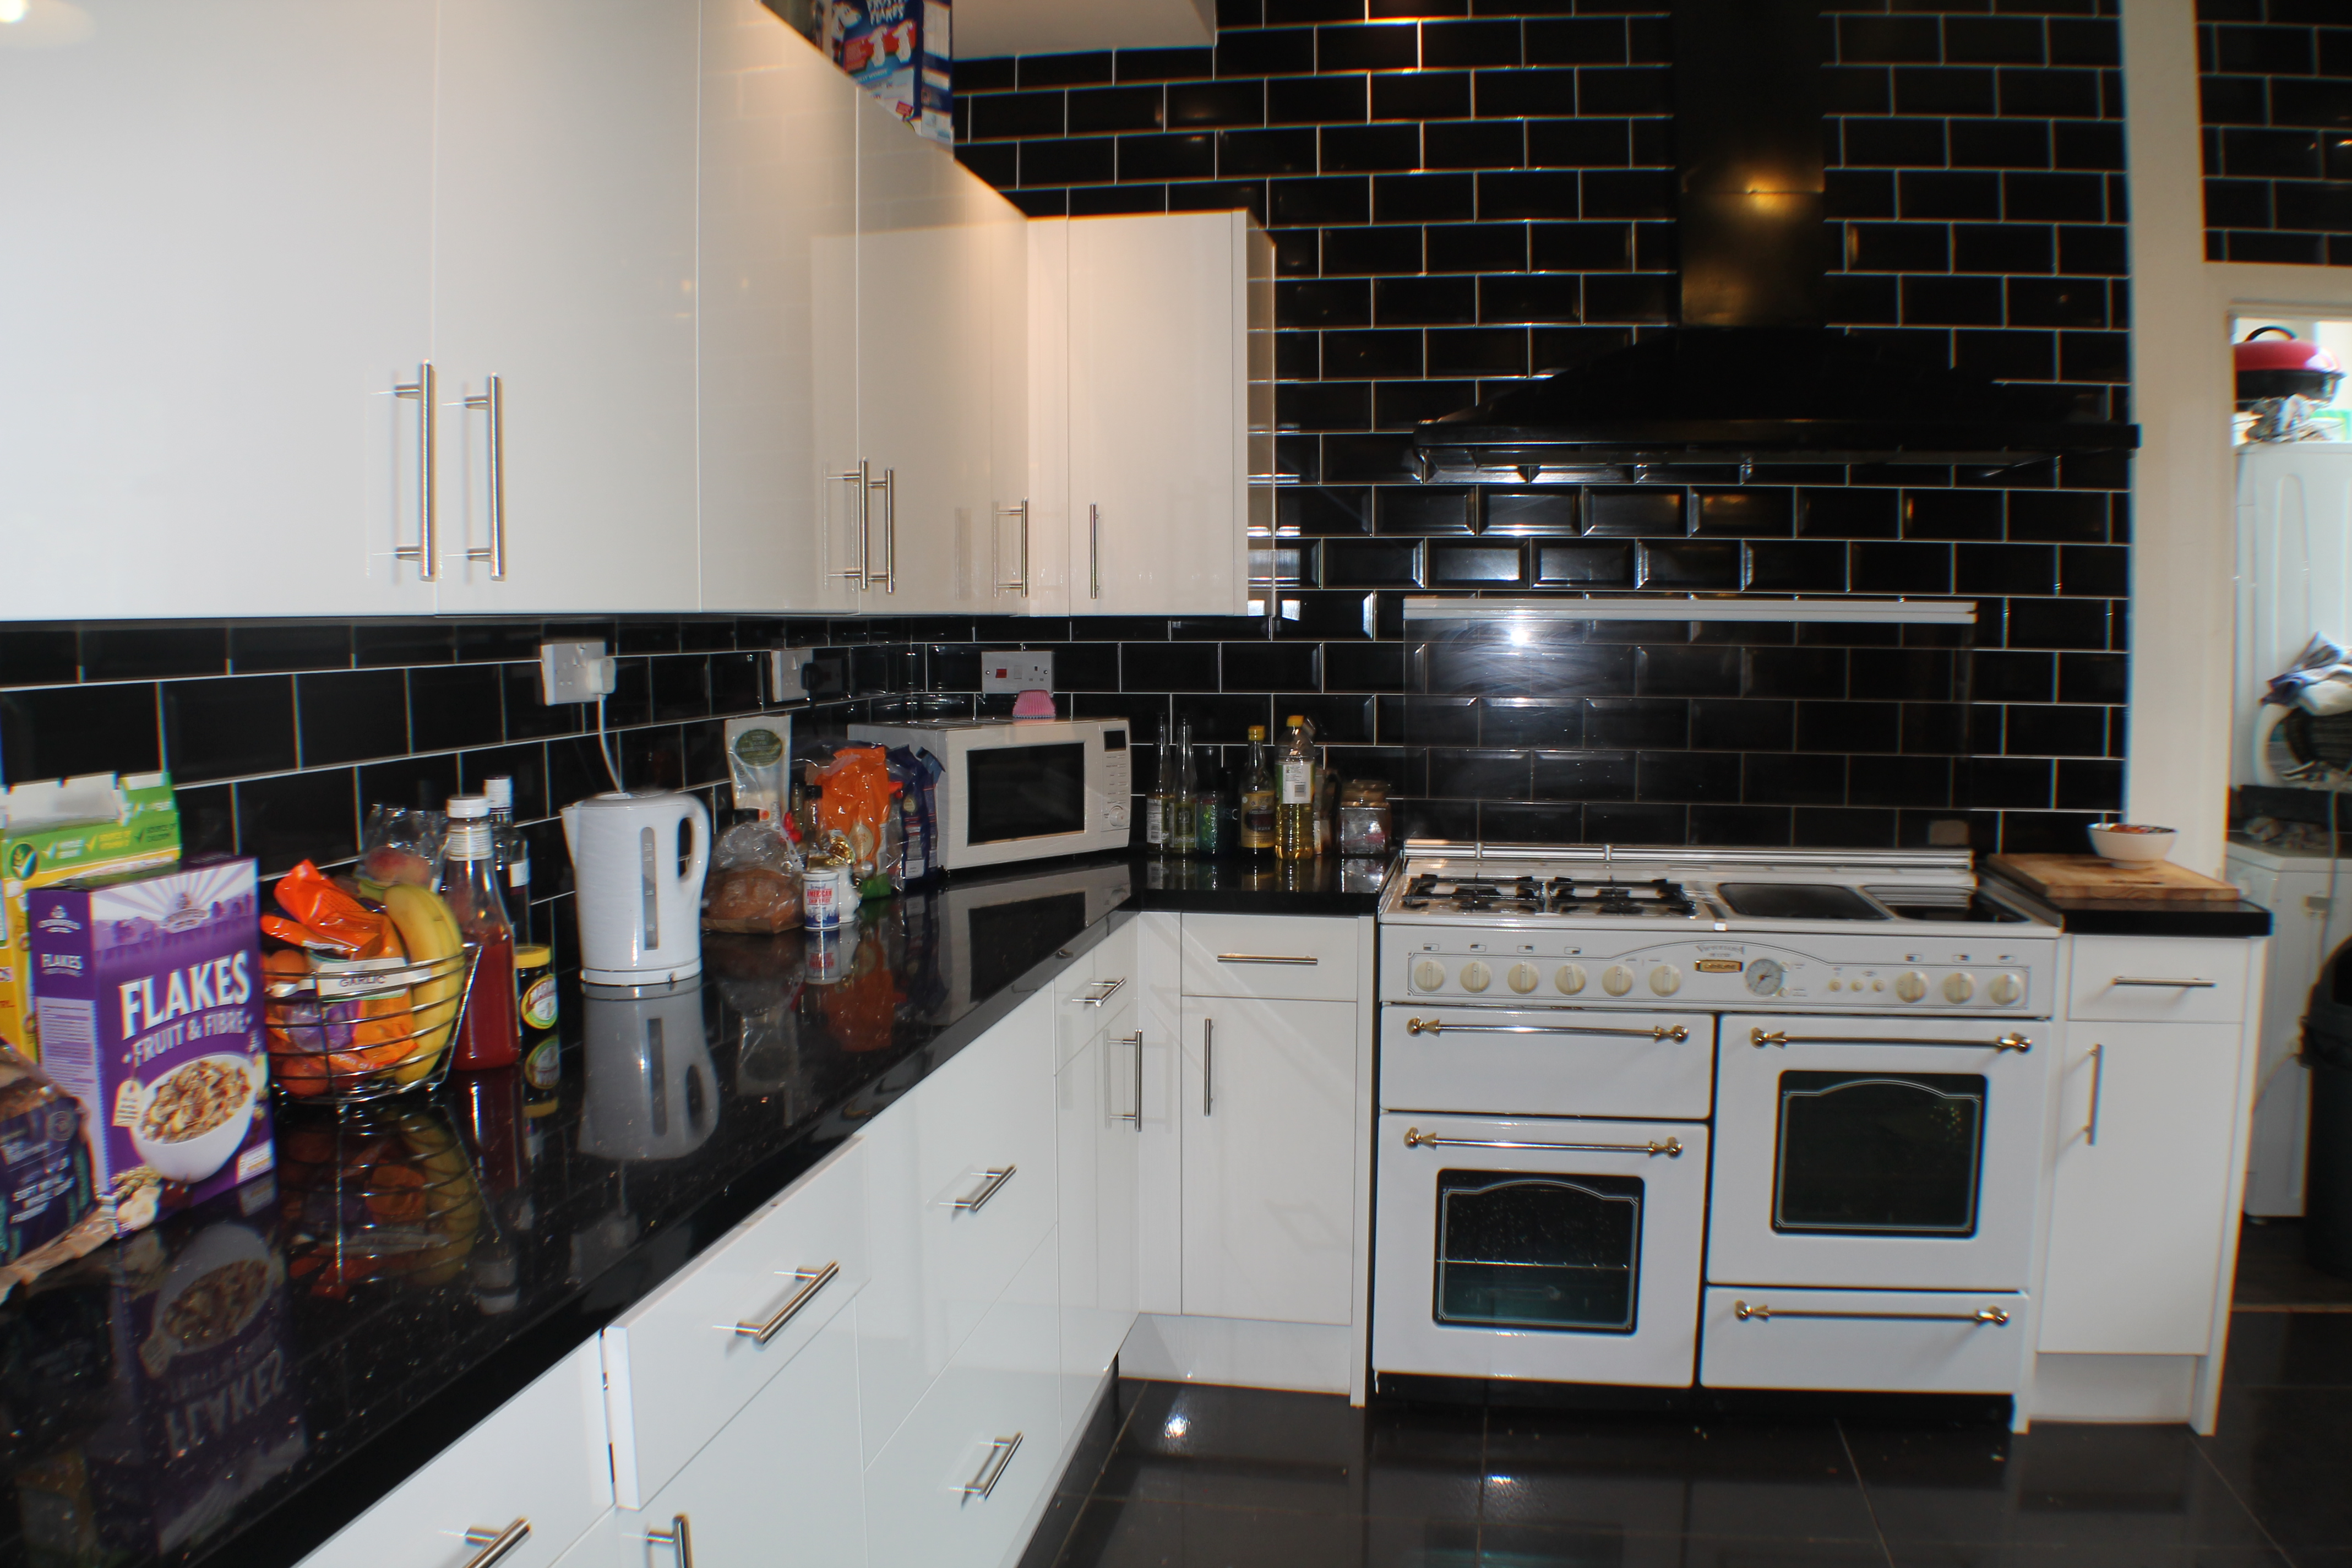 Fully equipped kitchen with oven, microwave, toaster, pots and pans.